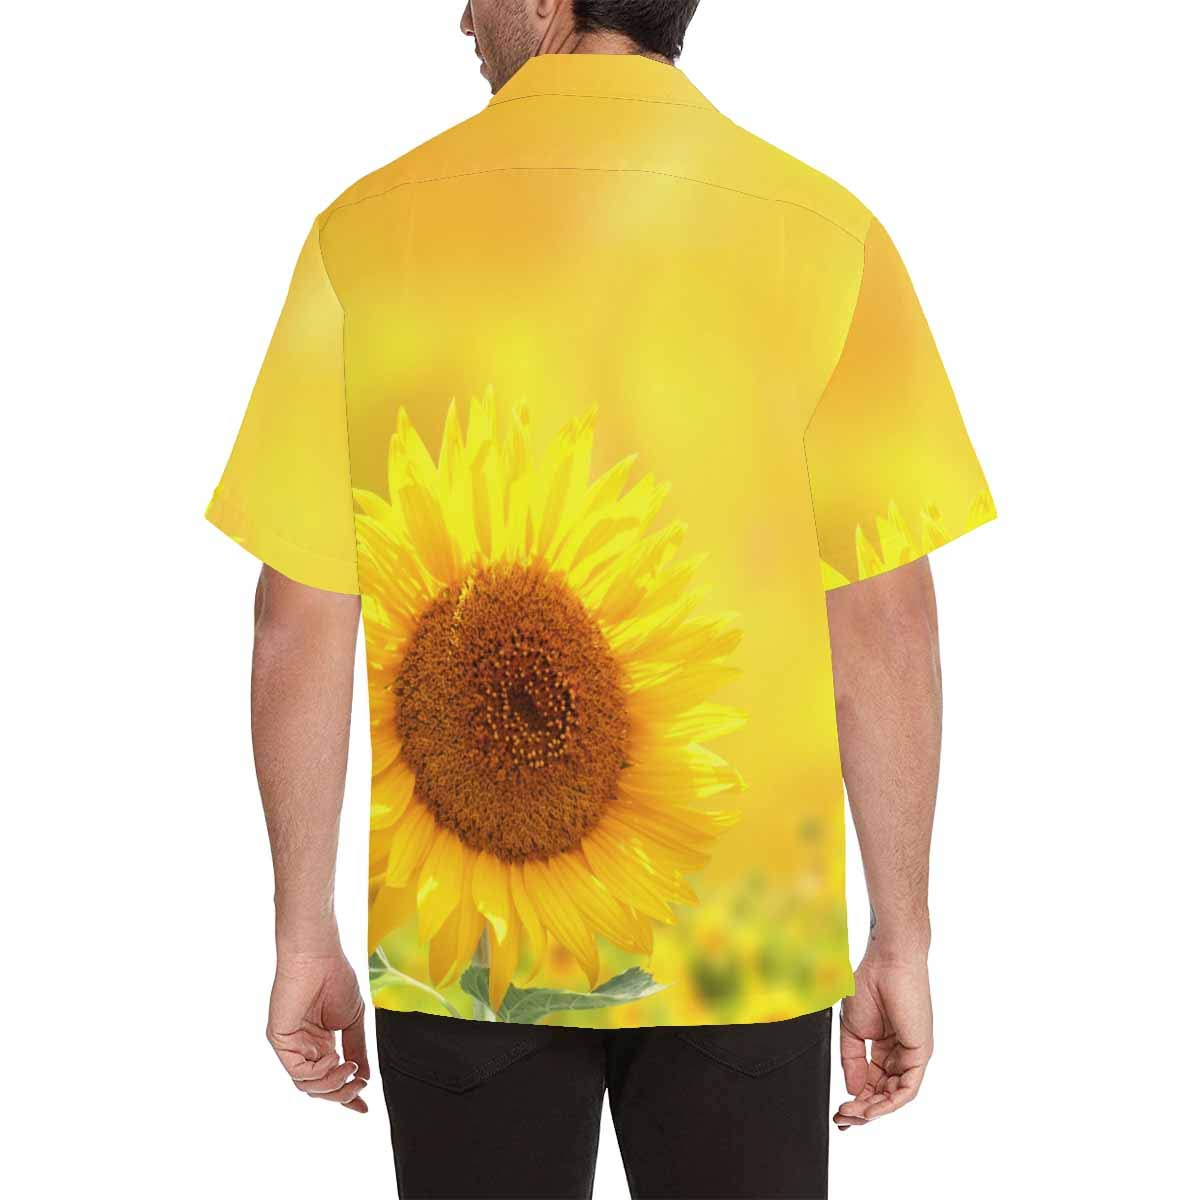 InterestPrint Bright Sunflowers Short-Sleeve Shirt Comfortable and Breathable